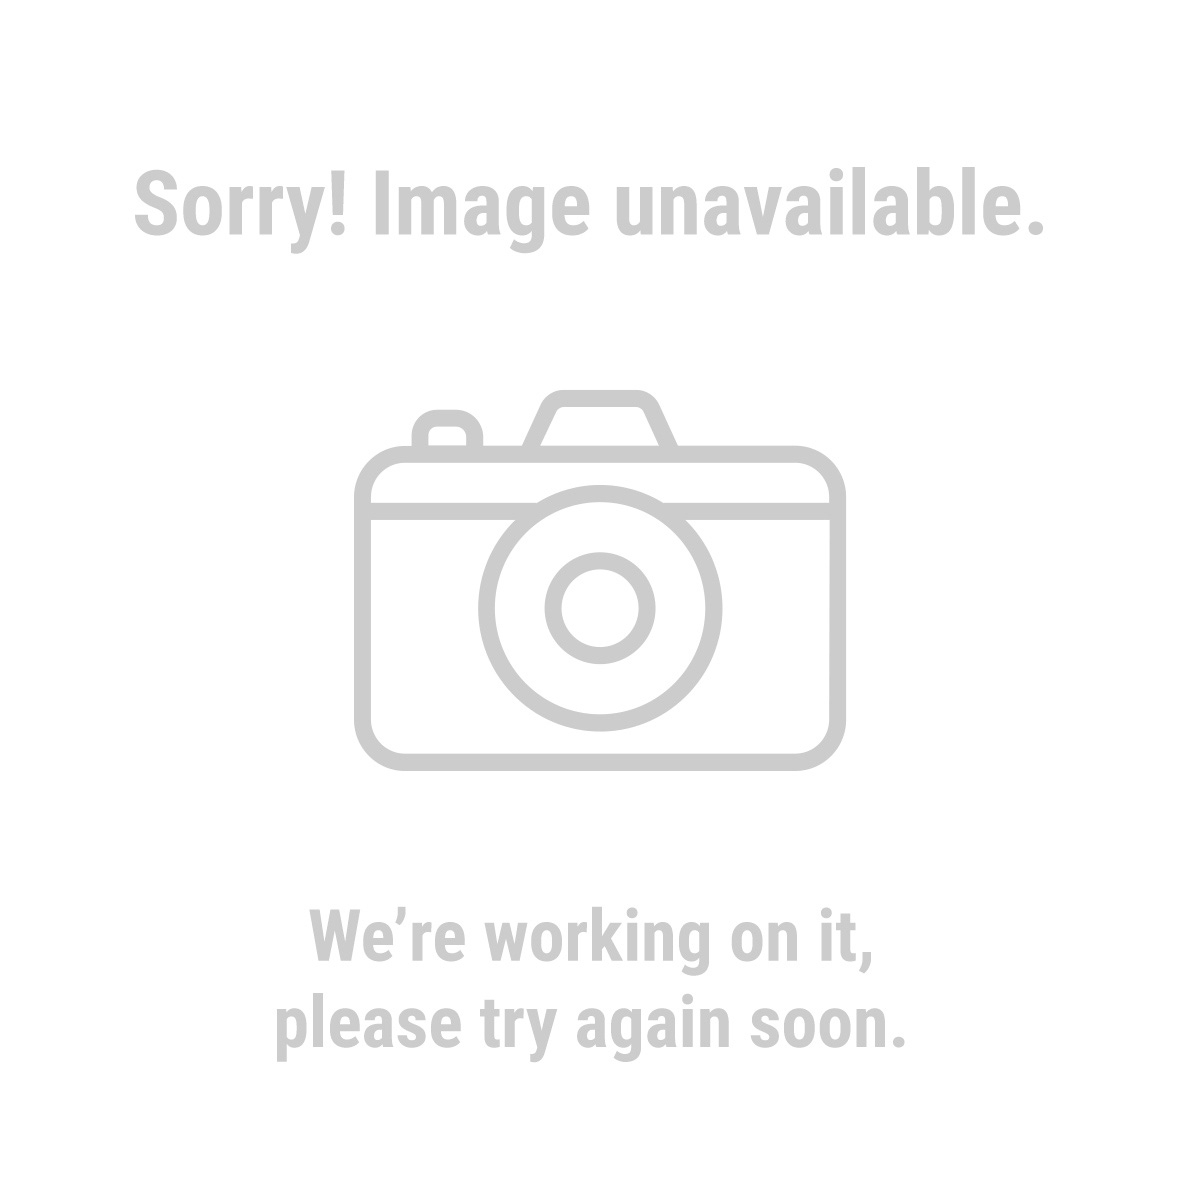 Meguiar's 65197 Cleaner Wax